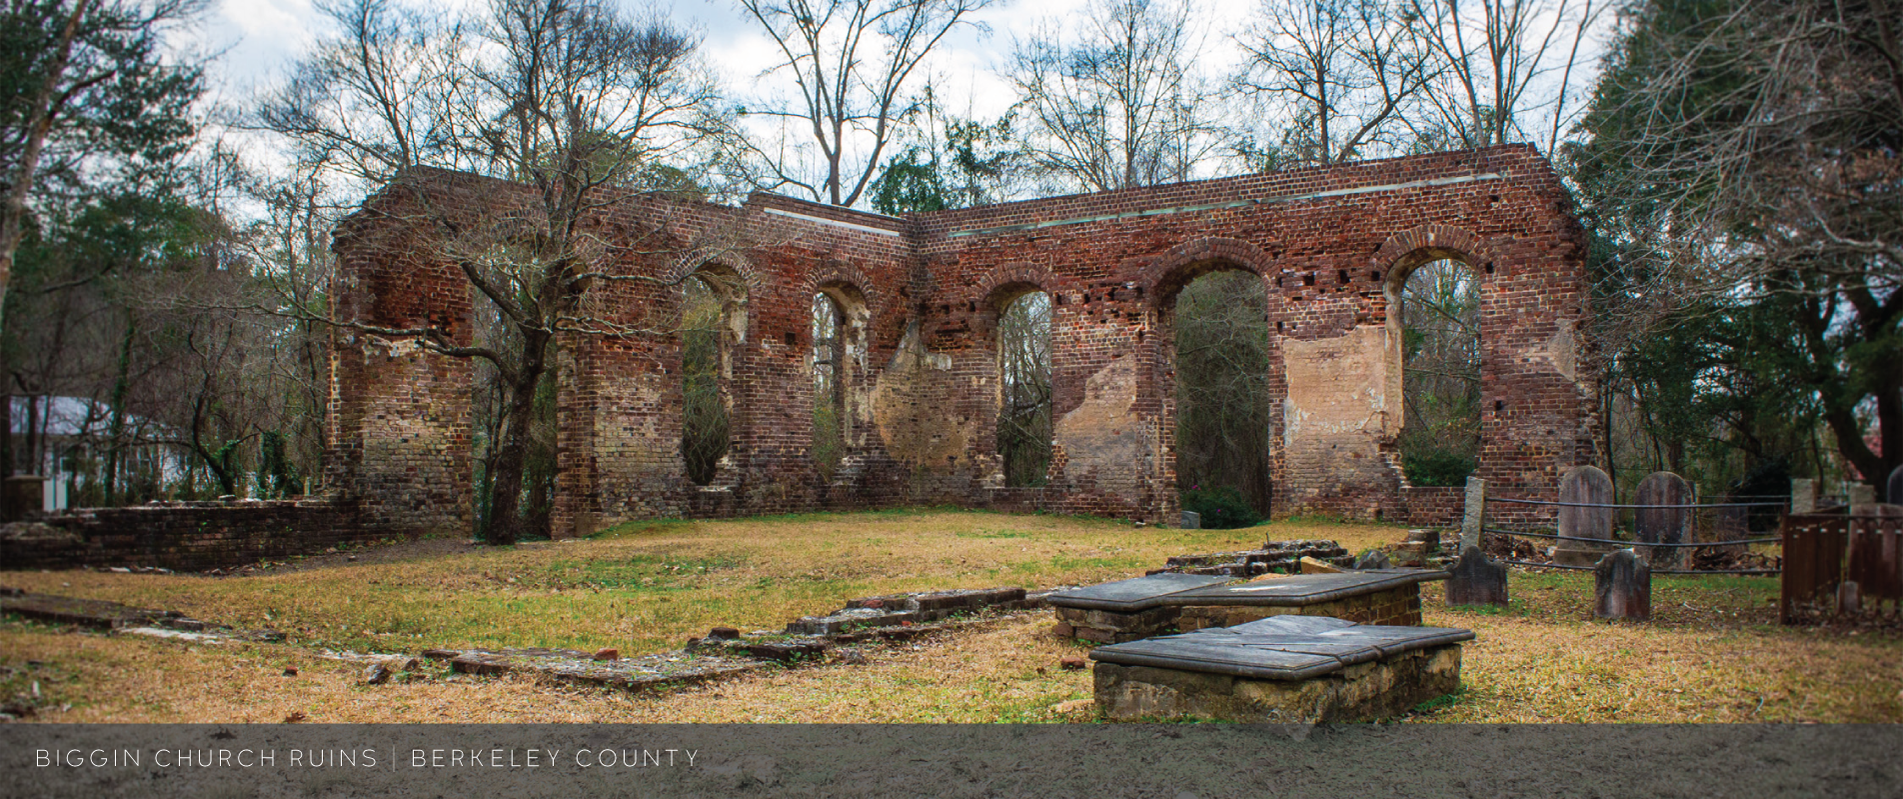 Berkeley-County-with-Text_Biggin-Church-Ruins-12